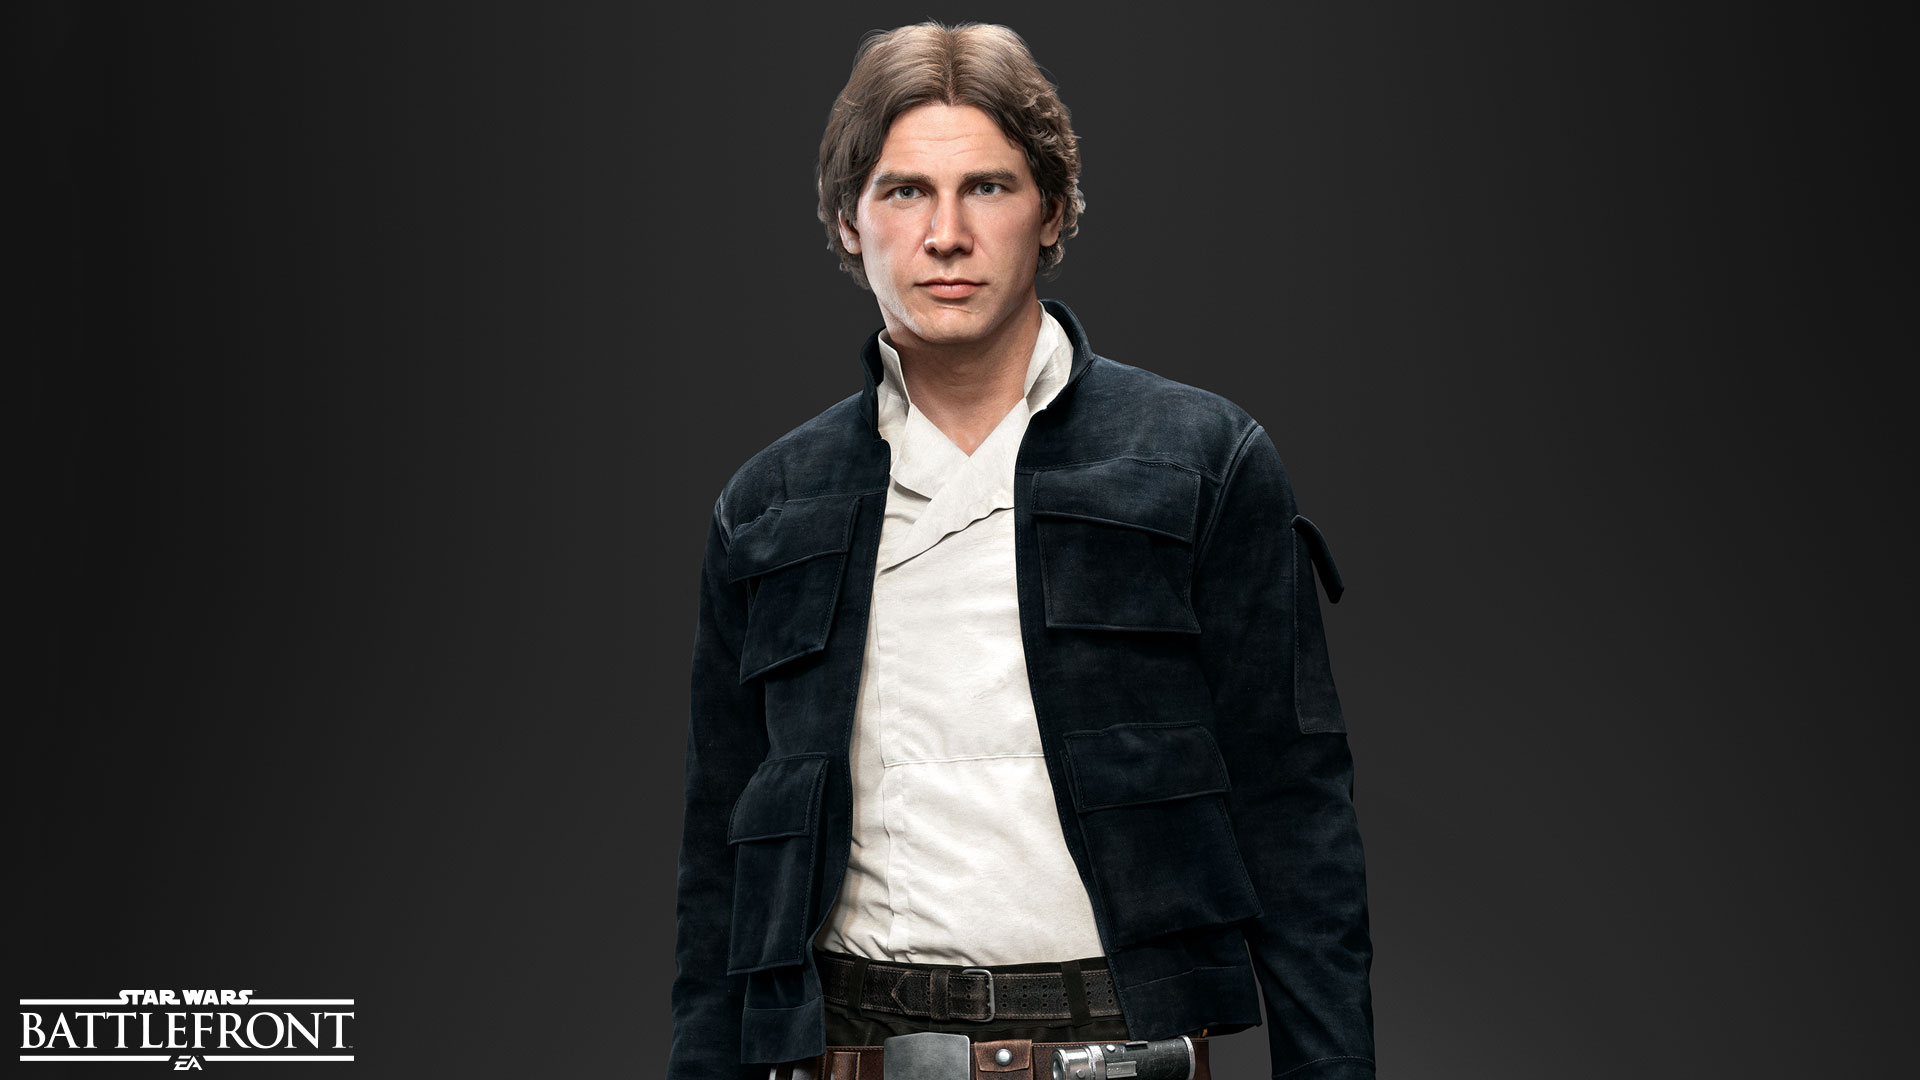 5 Star Ford >> The Heroes of Star Wars Battlefront: Han Solo - Star Wars - Official EA Site